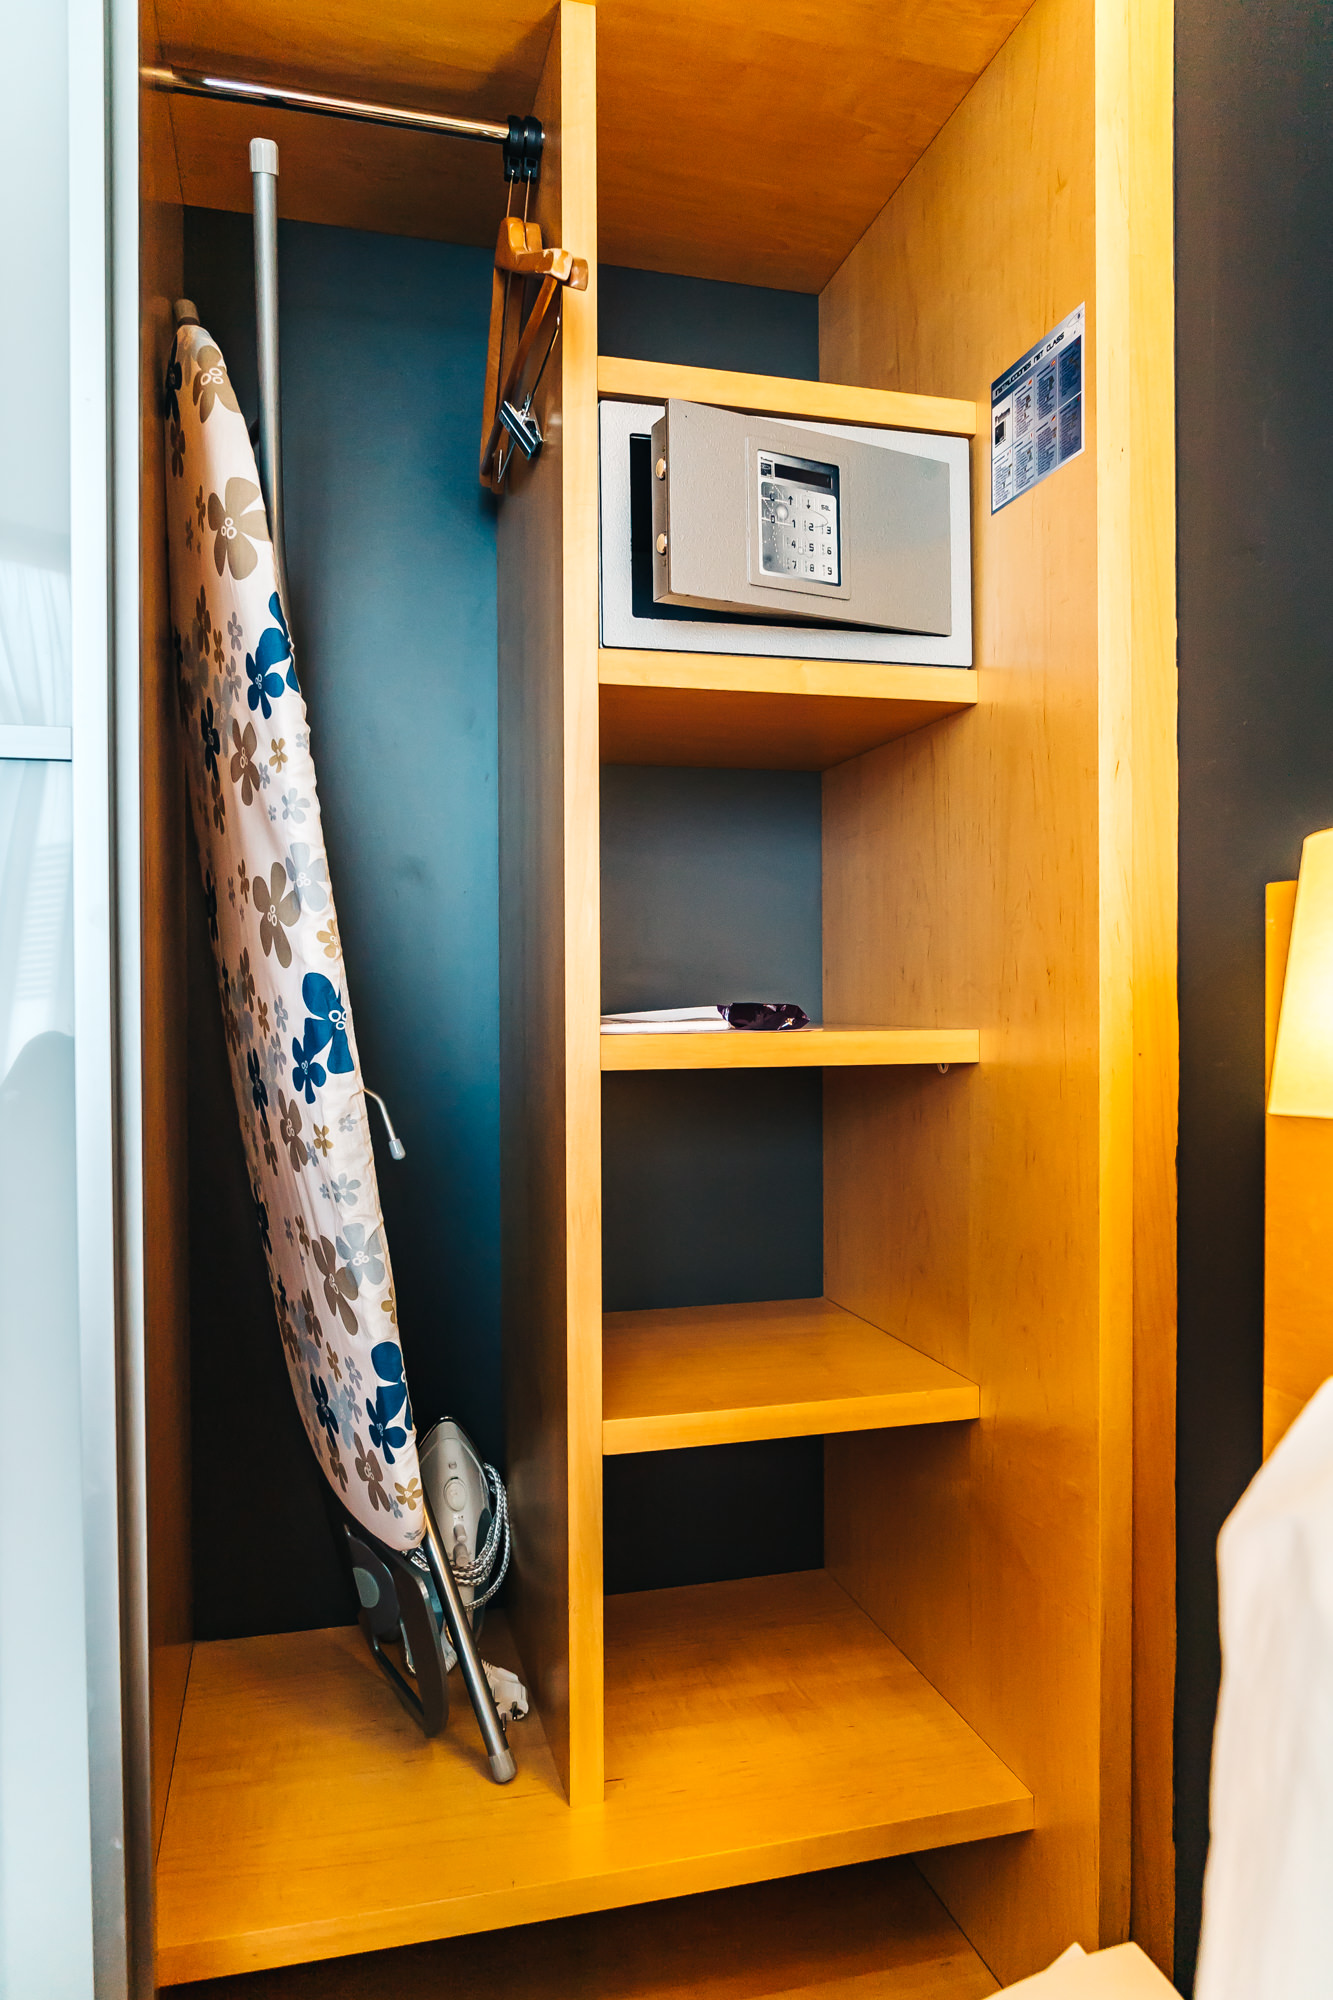 Plenty of closet space with safe and ironing board